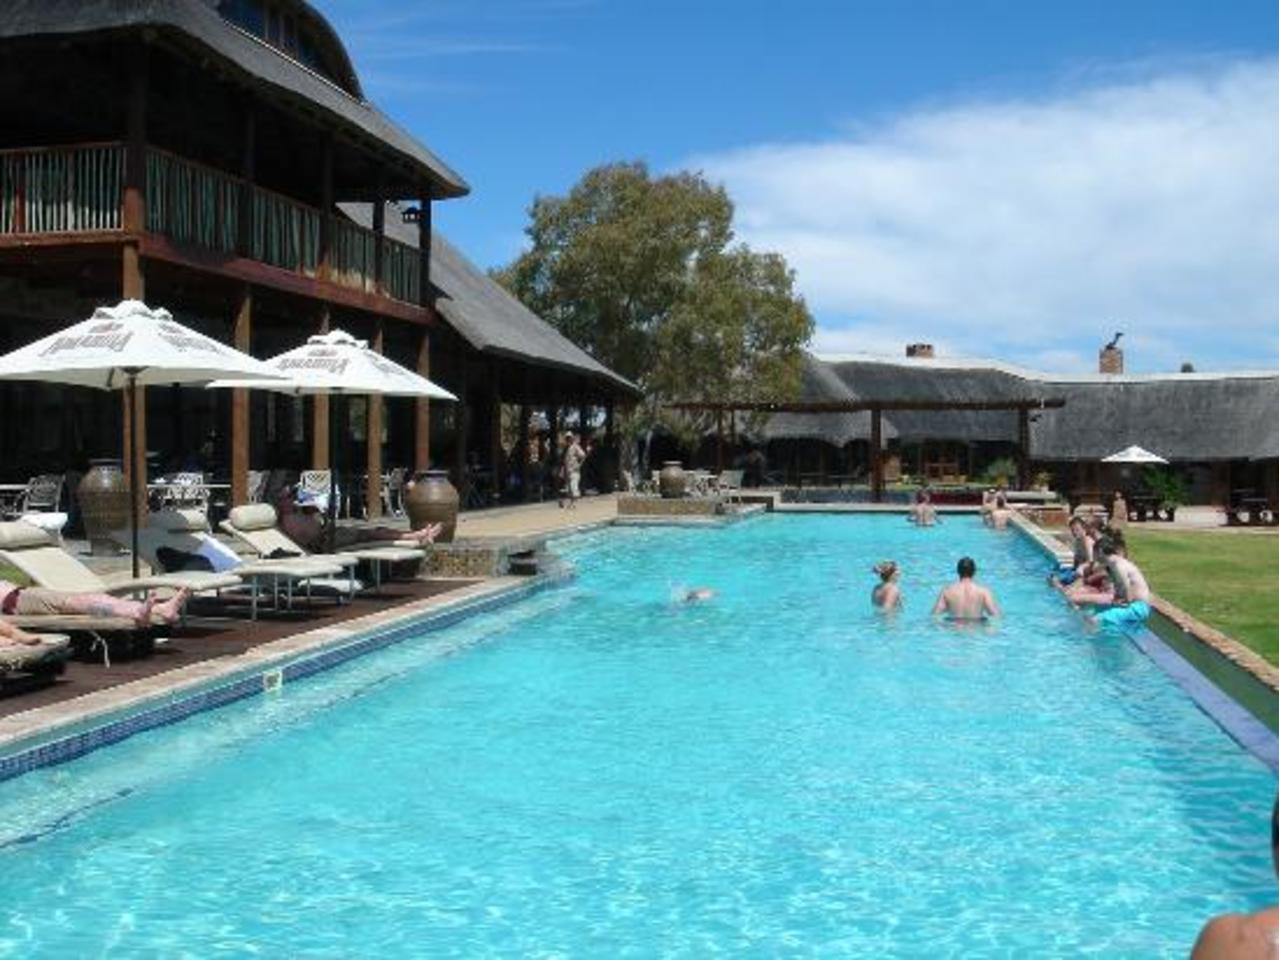 Relax and enjoy the facilities after your Safari